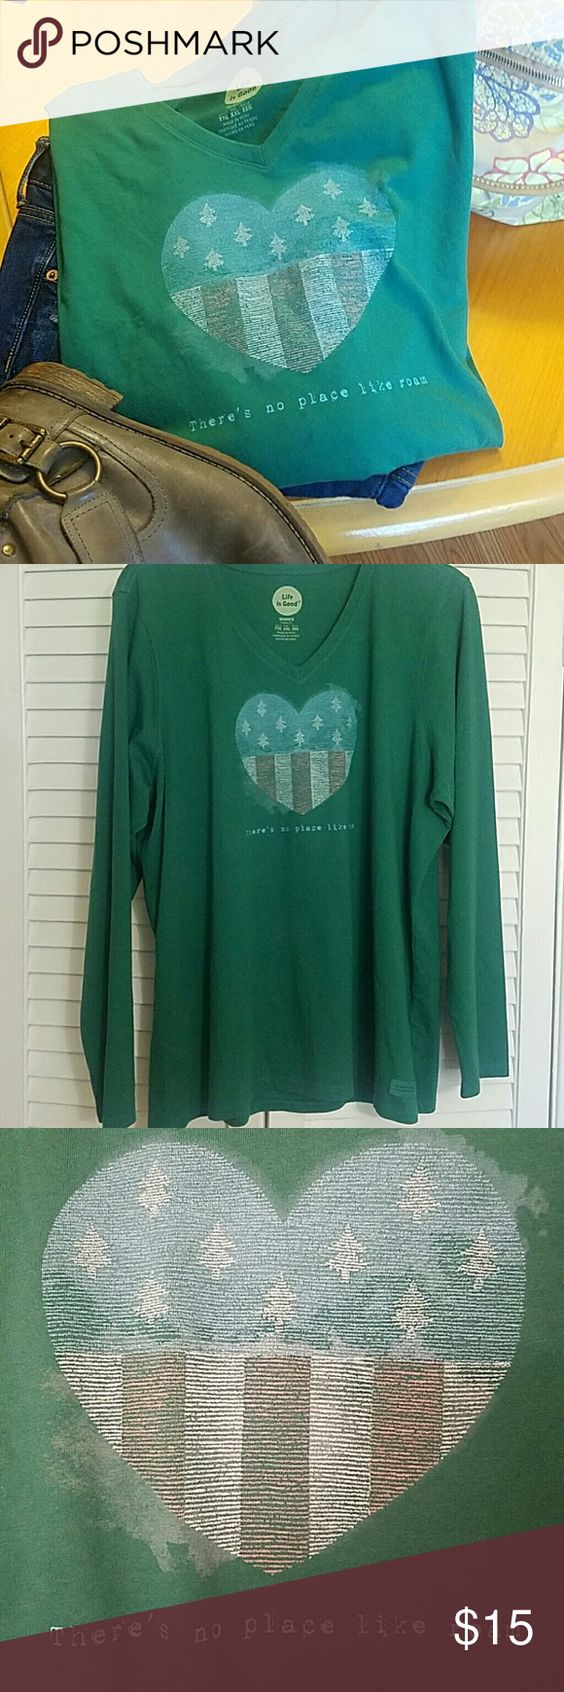 """XXL Life Is Good  Long Sleeve Tee New without tag, never worn.  Roomy & comfy fun shirt w heart resembling American flag w trees instead of stars.  """"There's no place like roam"""" for those of us who are always out n about.. Life is Good Tops Tees - Long Sleeve"""